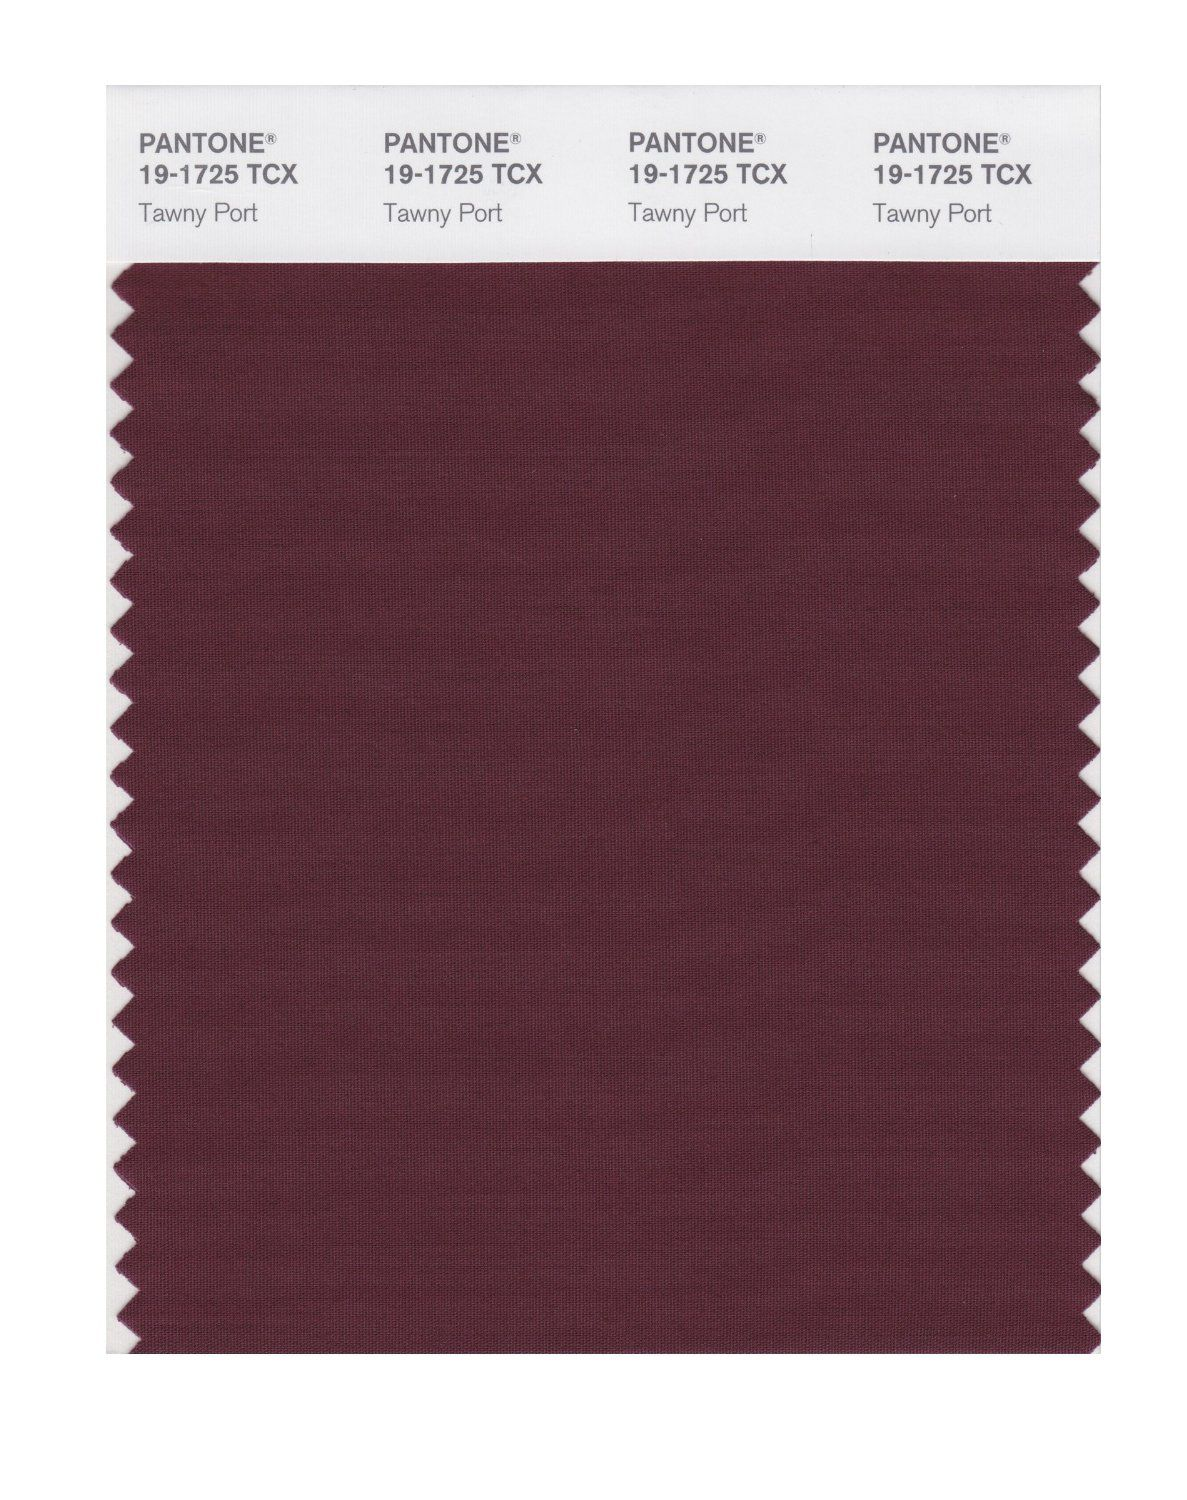 PANTONE SMART 19-1760X Color Swatch Card, Scarlet - Amazon.com